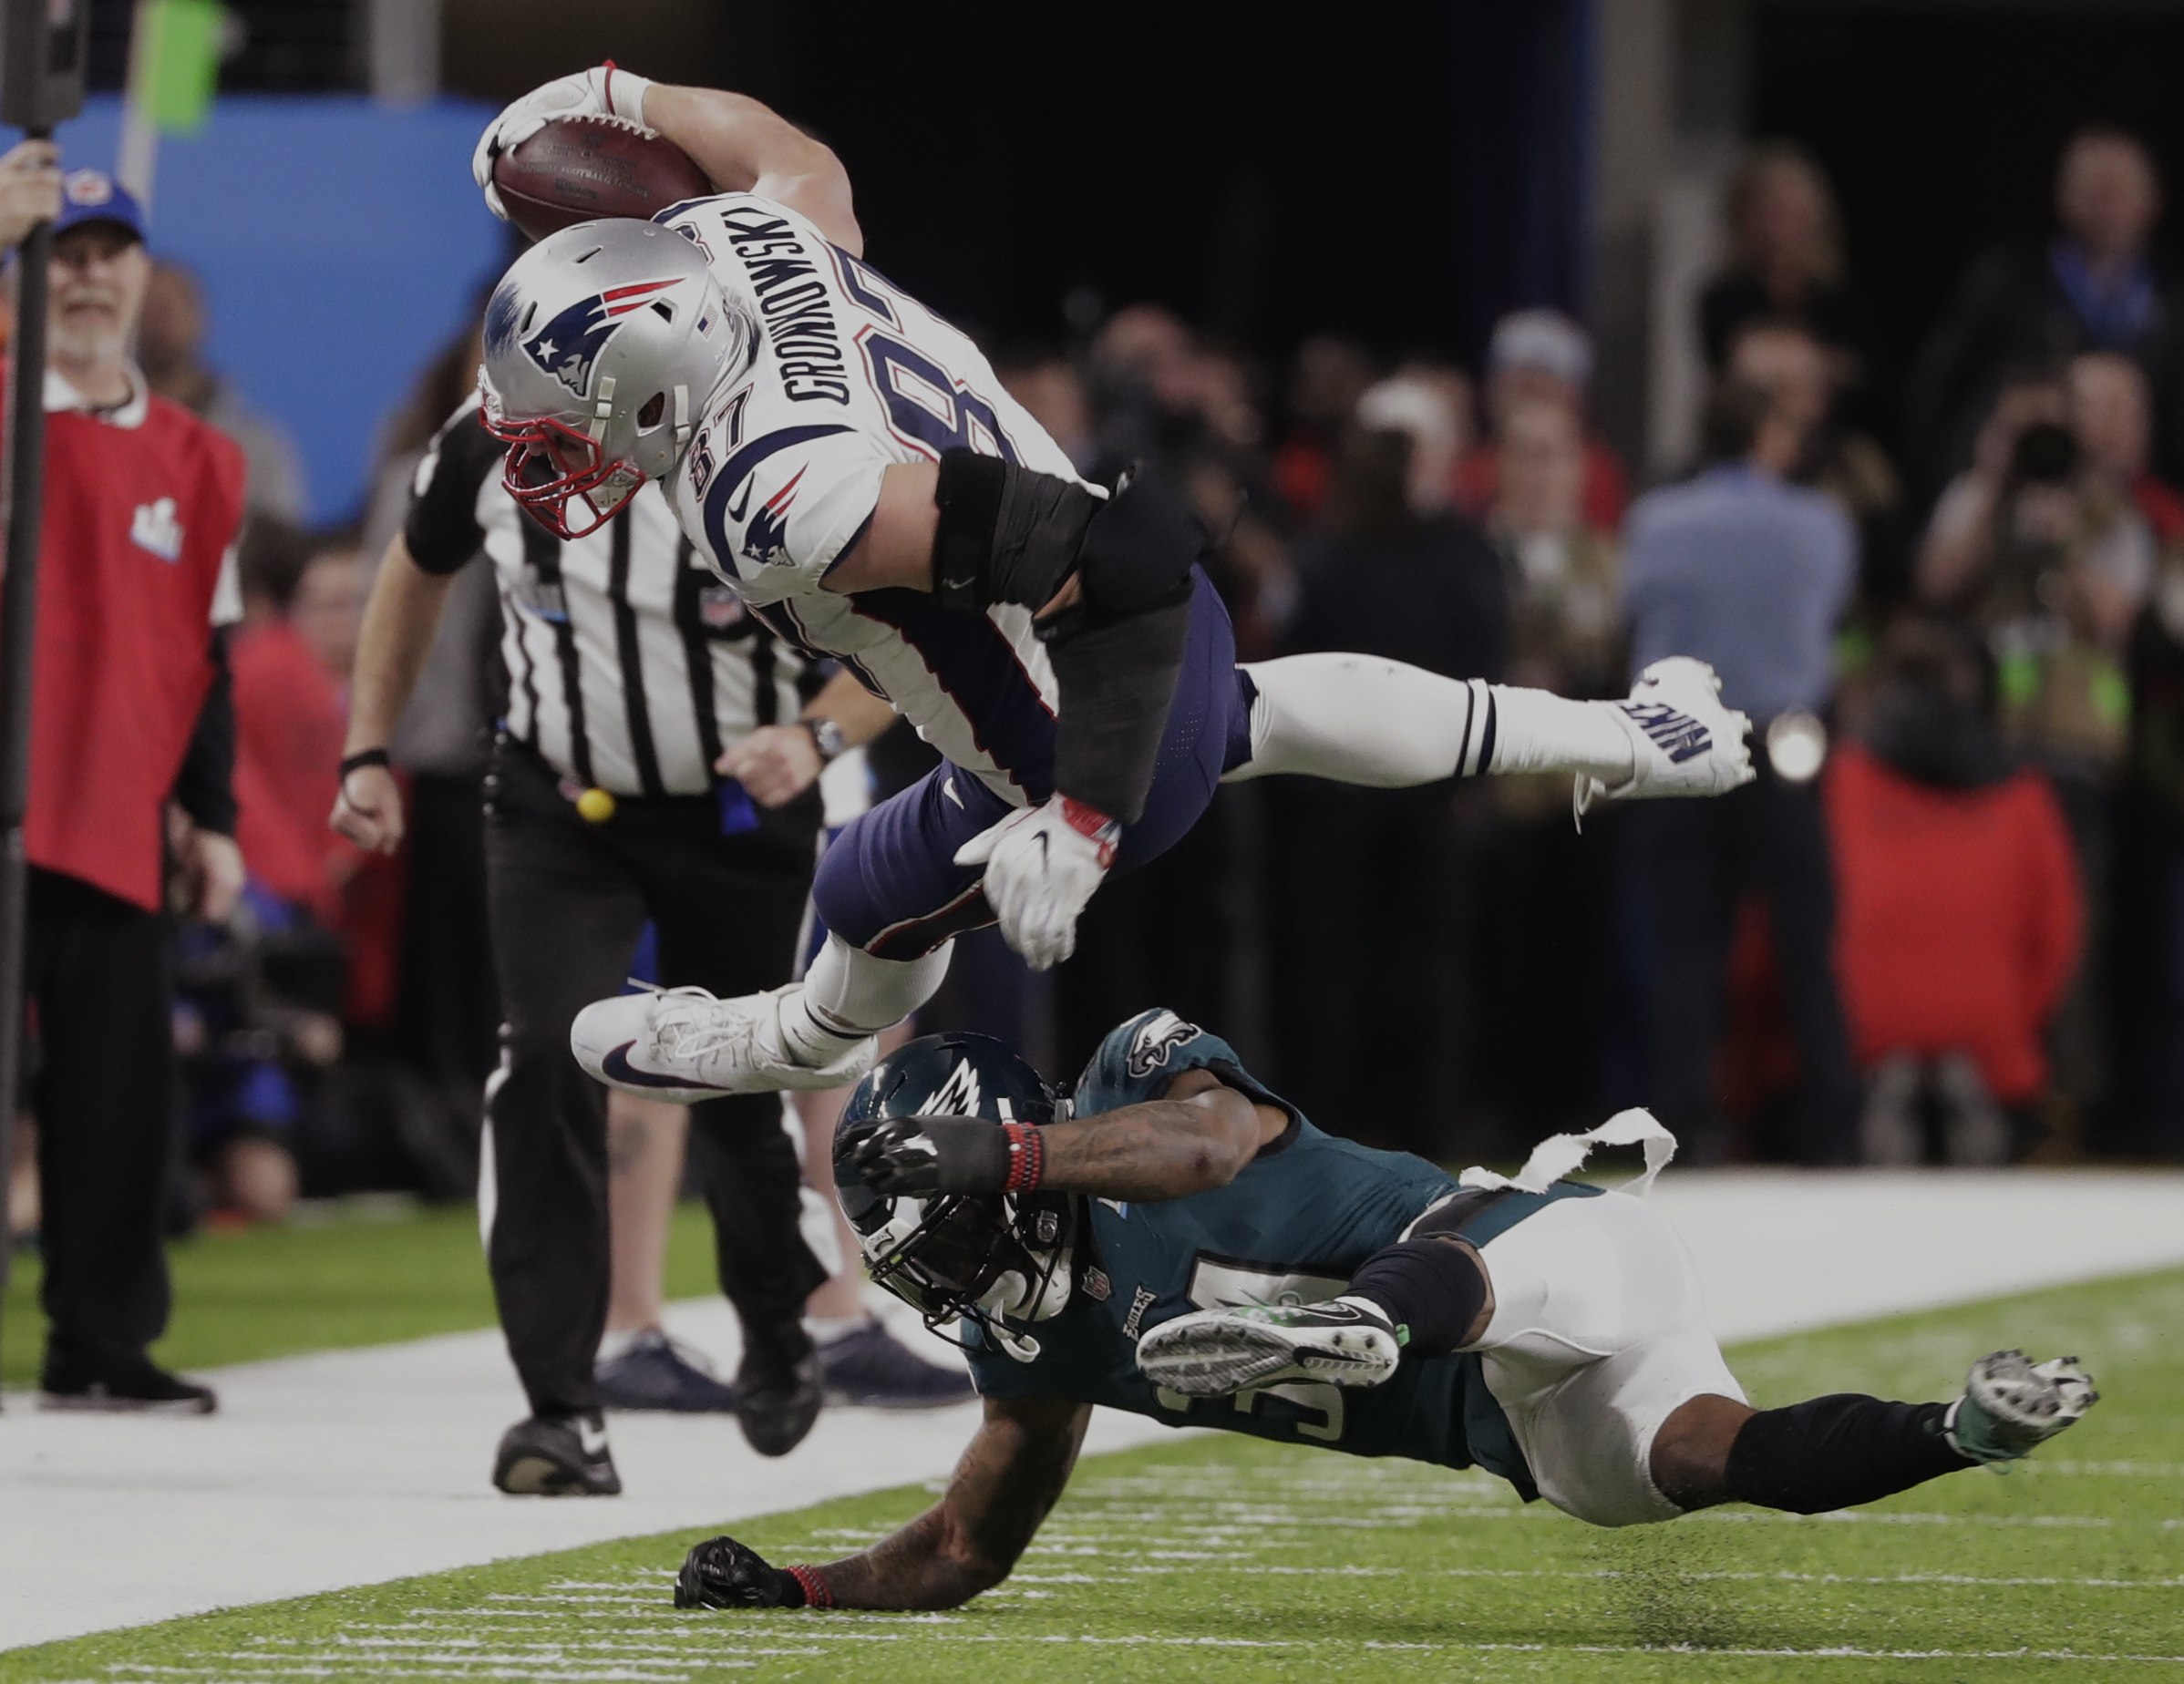 "<div class=""meta image-caption""><div class=""origin-logo origin-image ap""><span>AP</span></div><span class=""caption-text"">Philadelphia Eagles cornerback Jalen Mills (31) tackles New England Patriots tight end Rob Gronkowski (87), during the second half. (AP Photo/Tony Gutierrez)</span></div>"